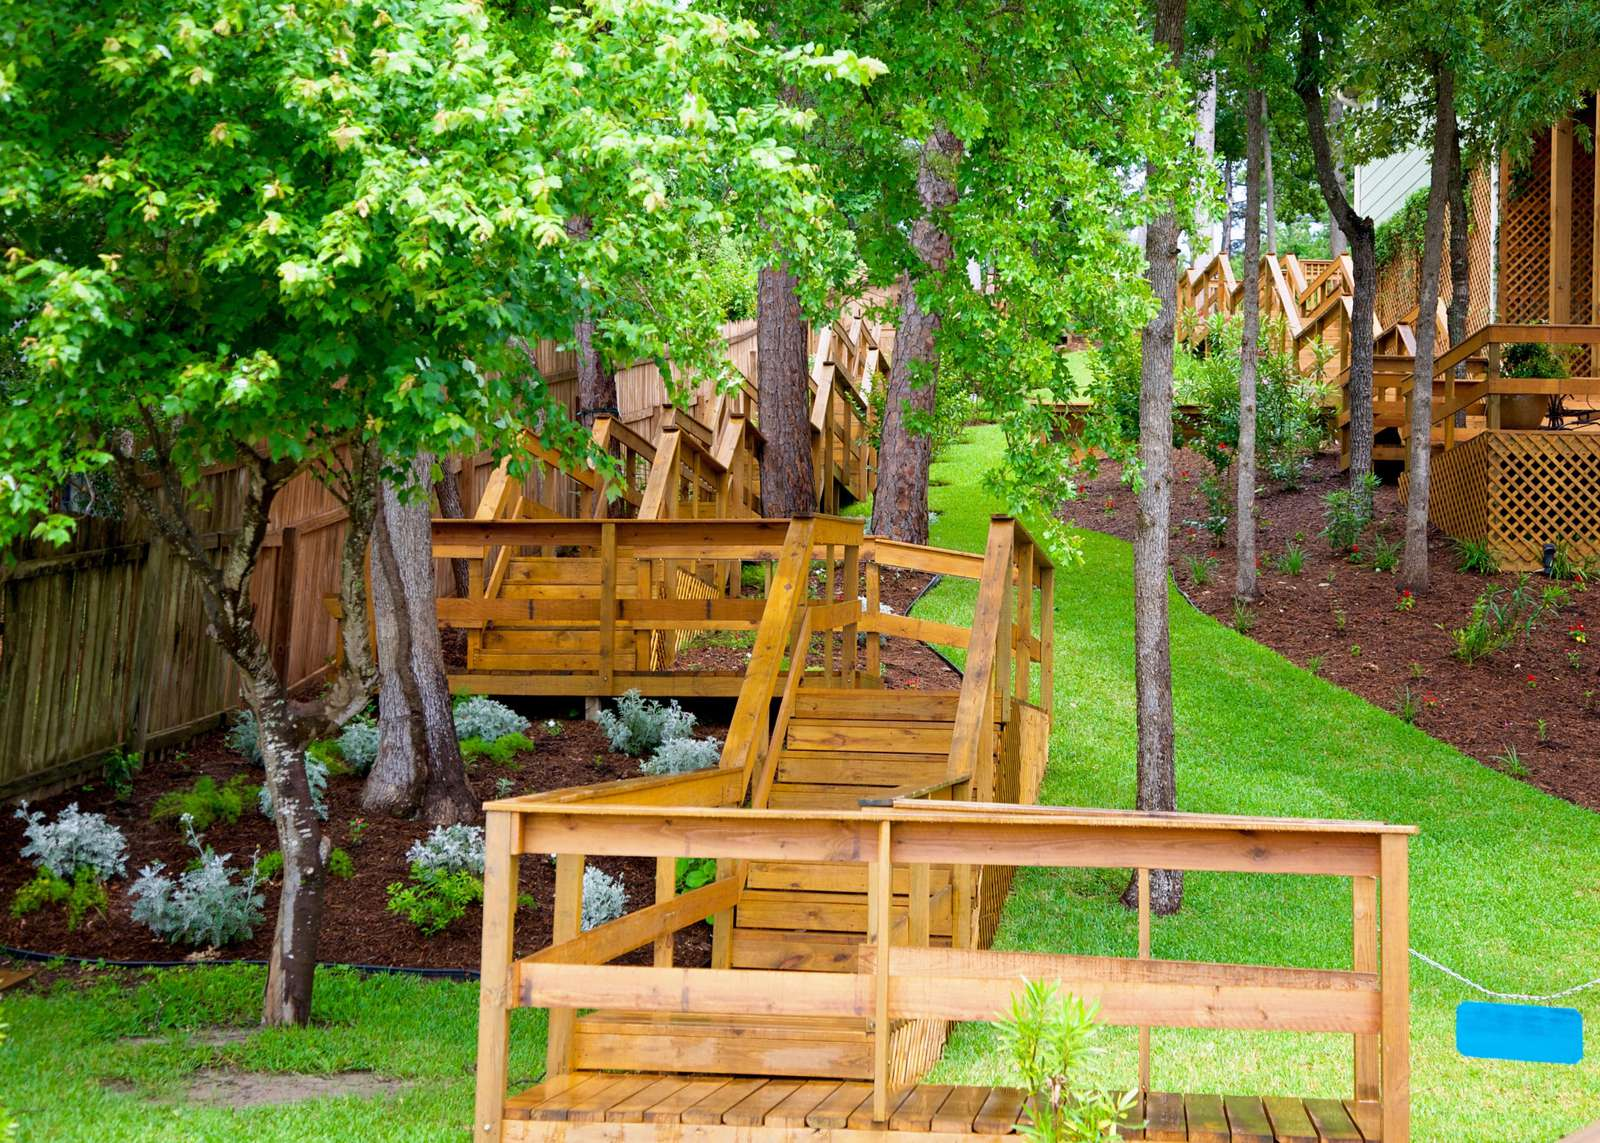 The stairway down to the lake is shaded and has benches for resting.